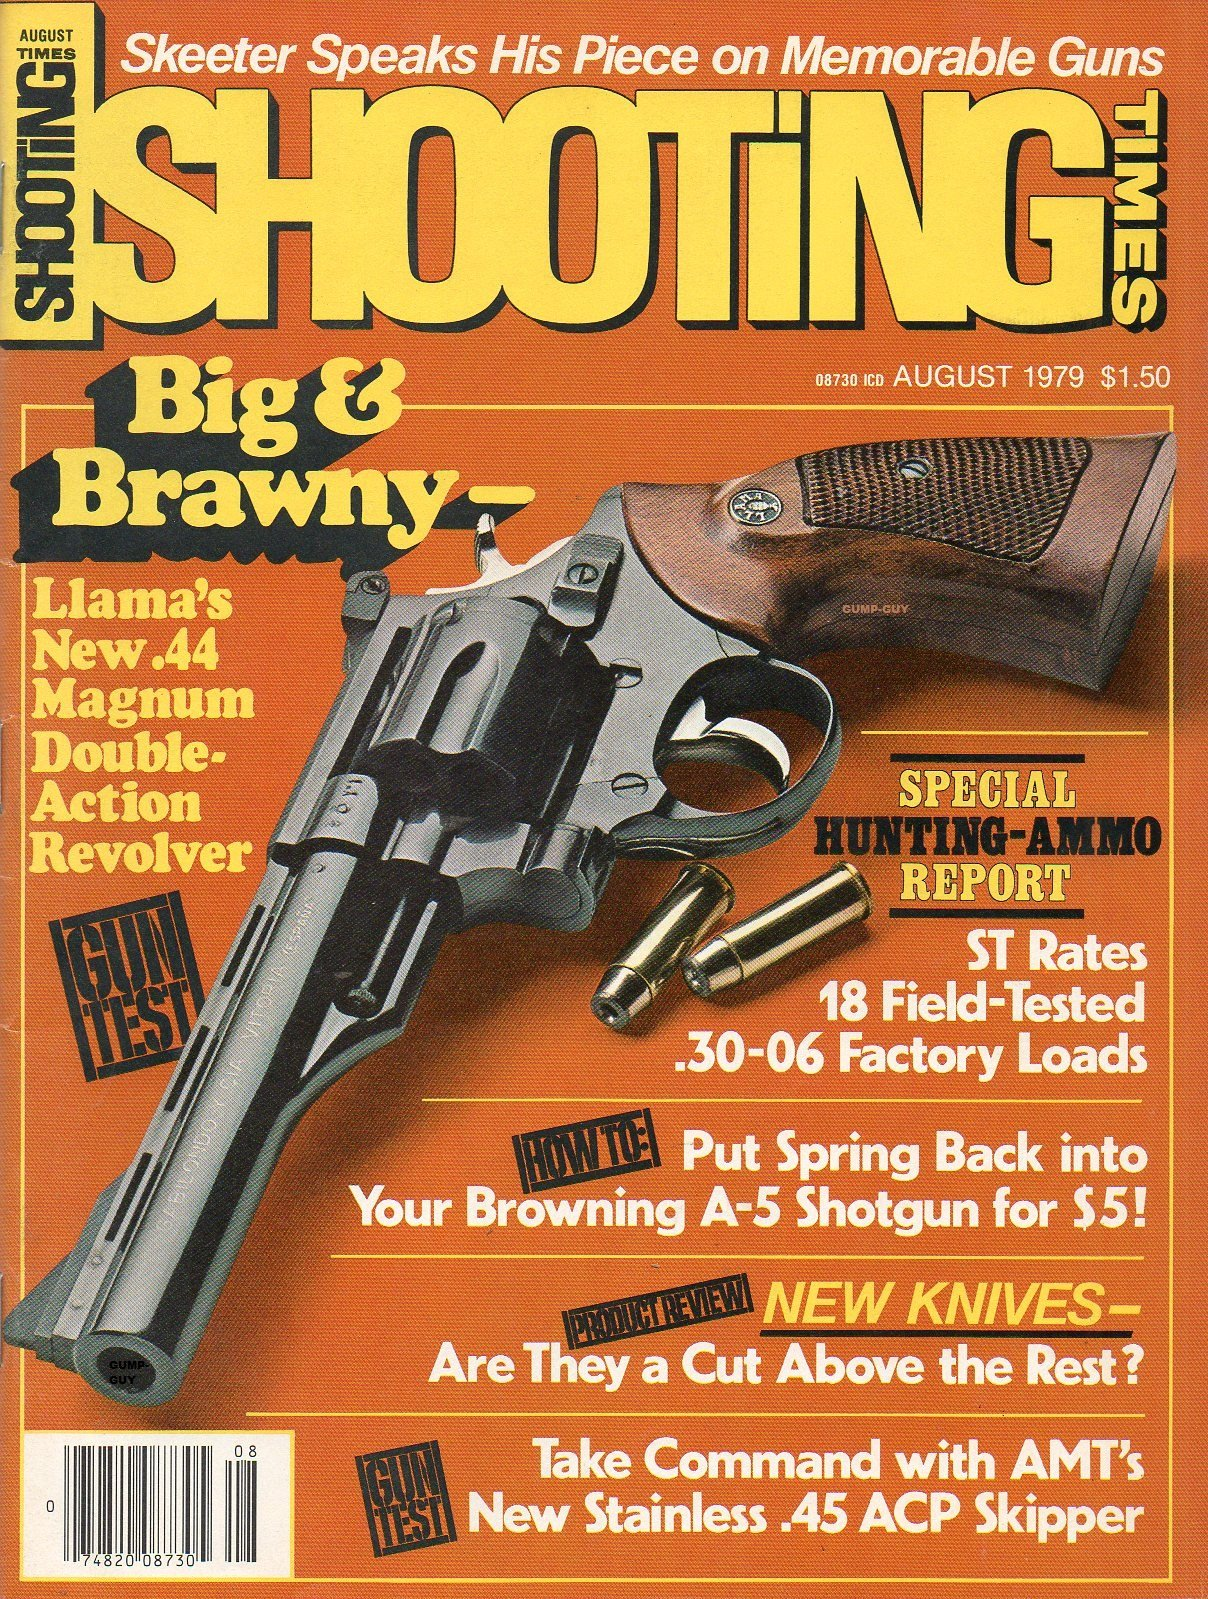 Shooting Times August 1979 Magazine BIG & BRAWNY - LLAMA'S